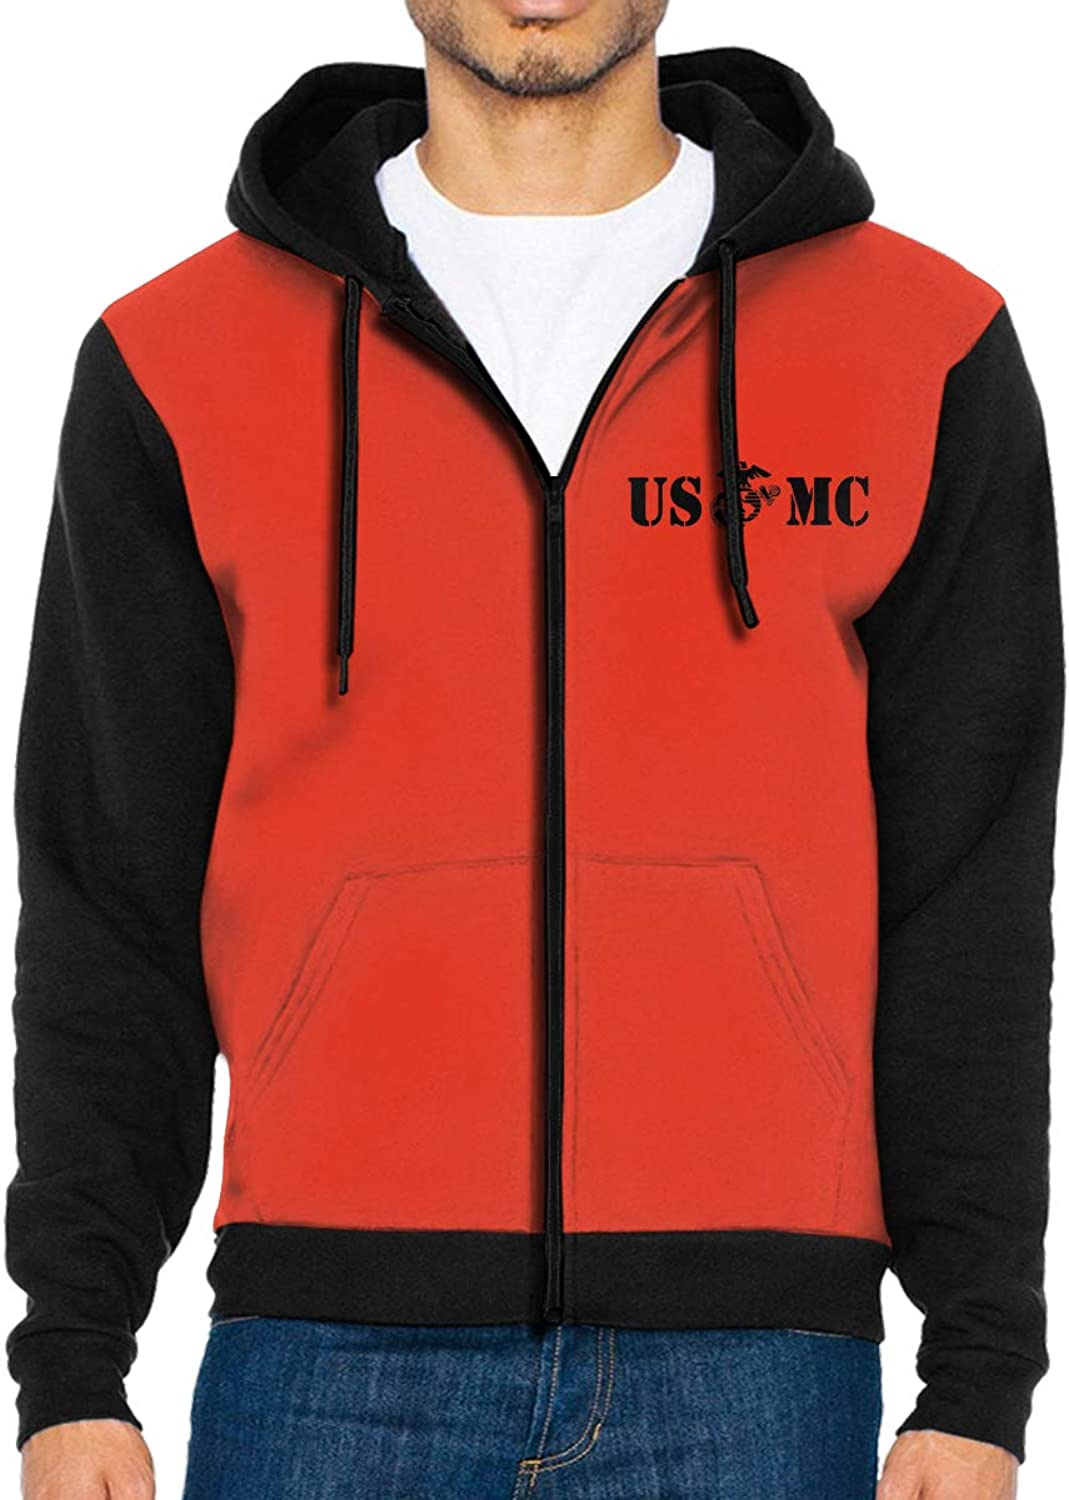 Men's USMC Marines Corps Emblem Full Zip Hoodie Jackets Hooded Sweatshirt